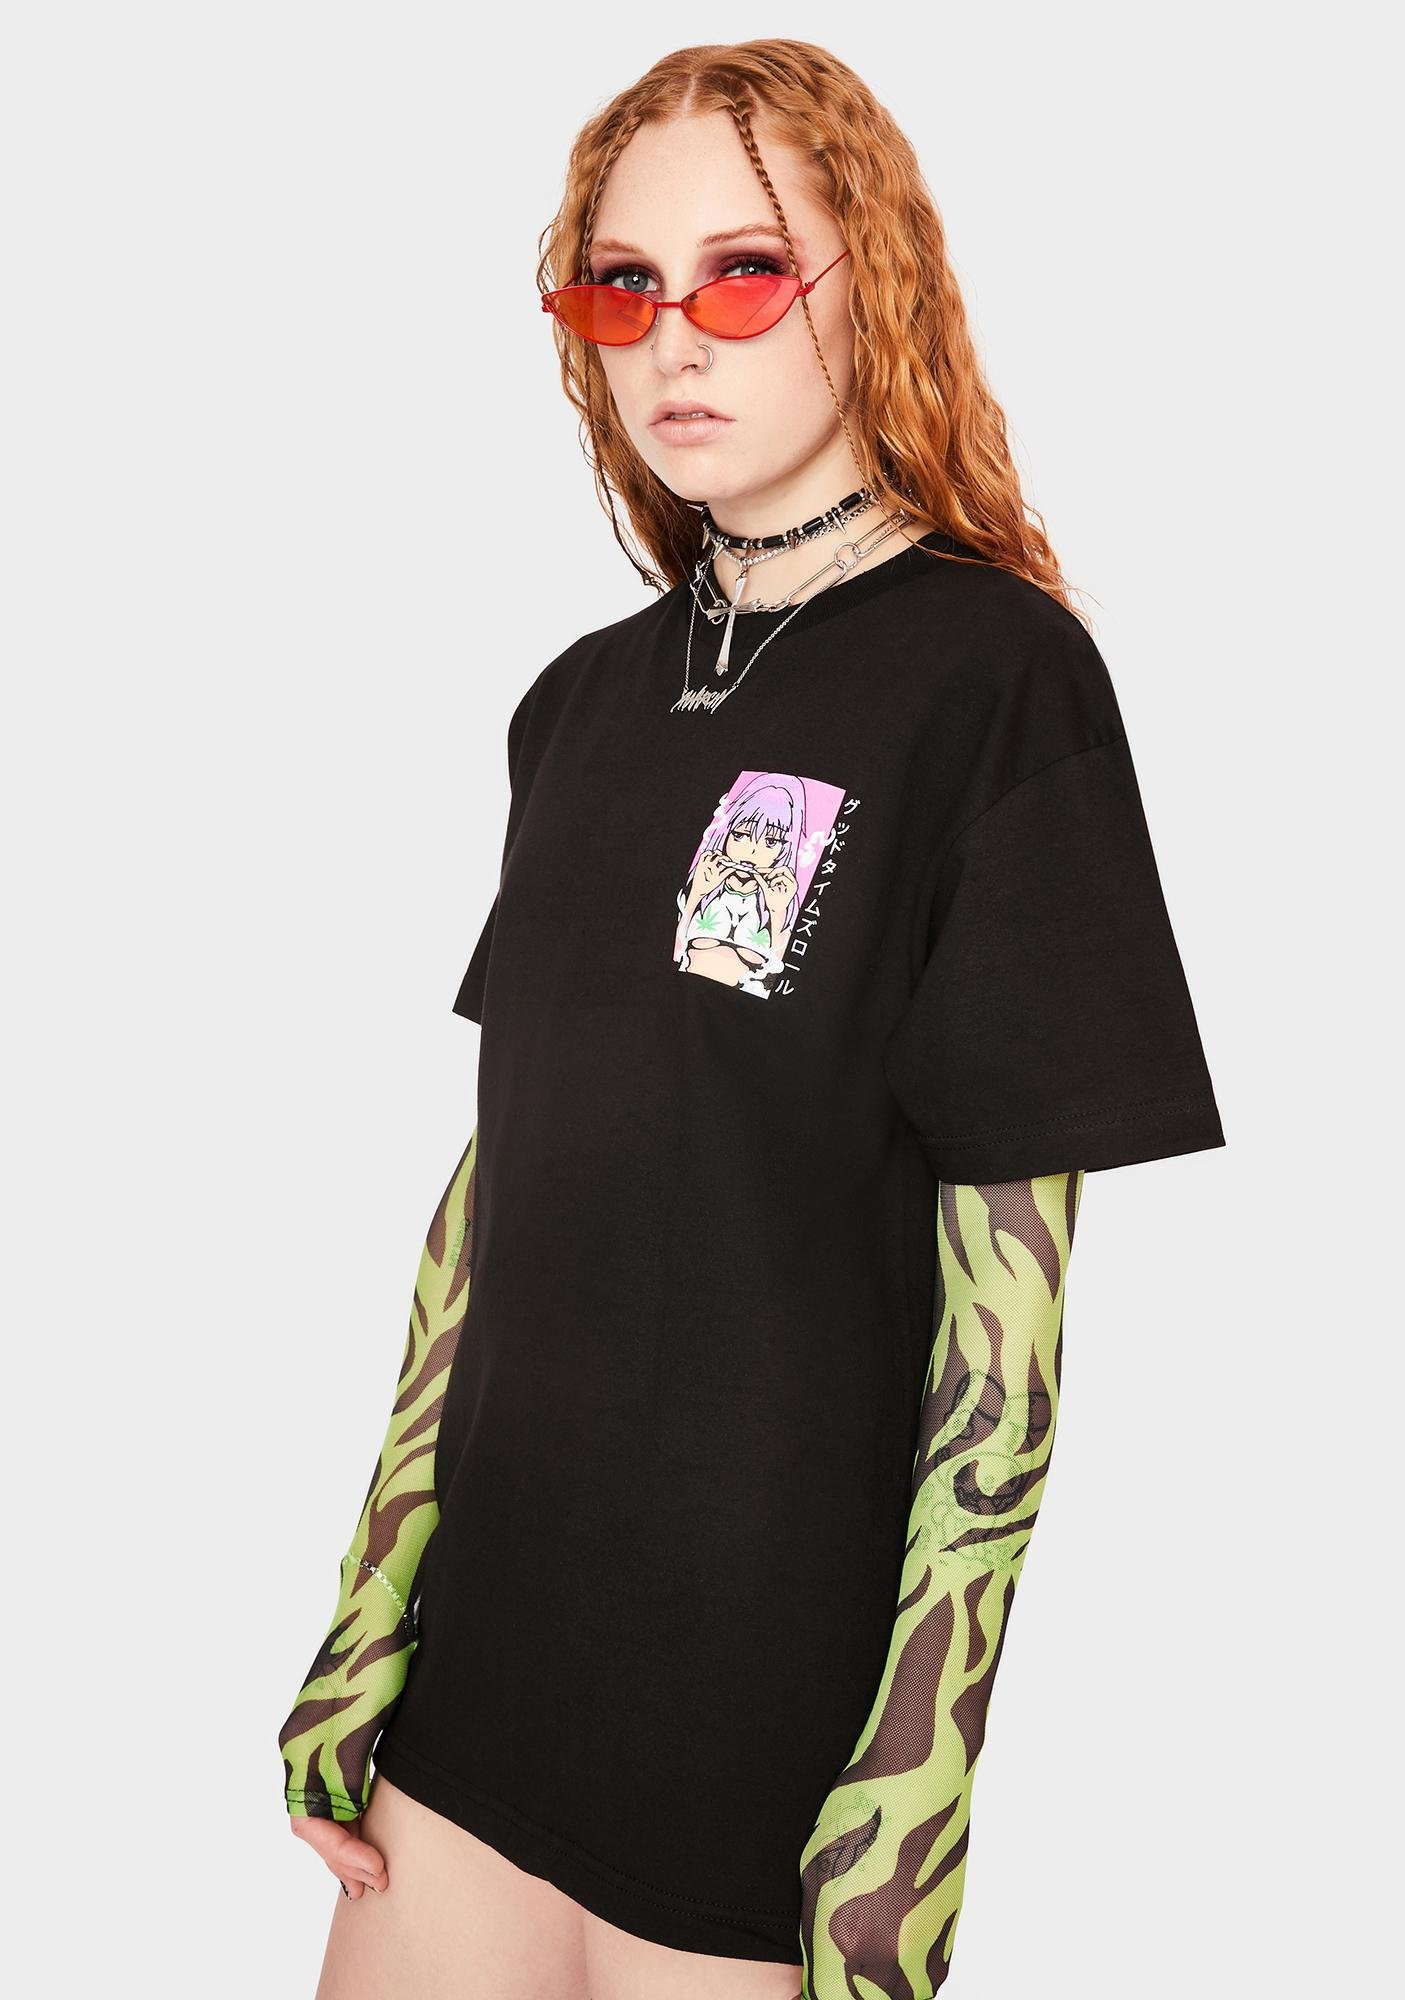 Know Bad Daze Good Times Roll Graphic Tee